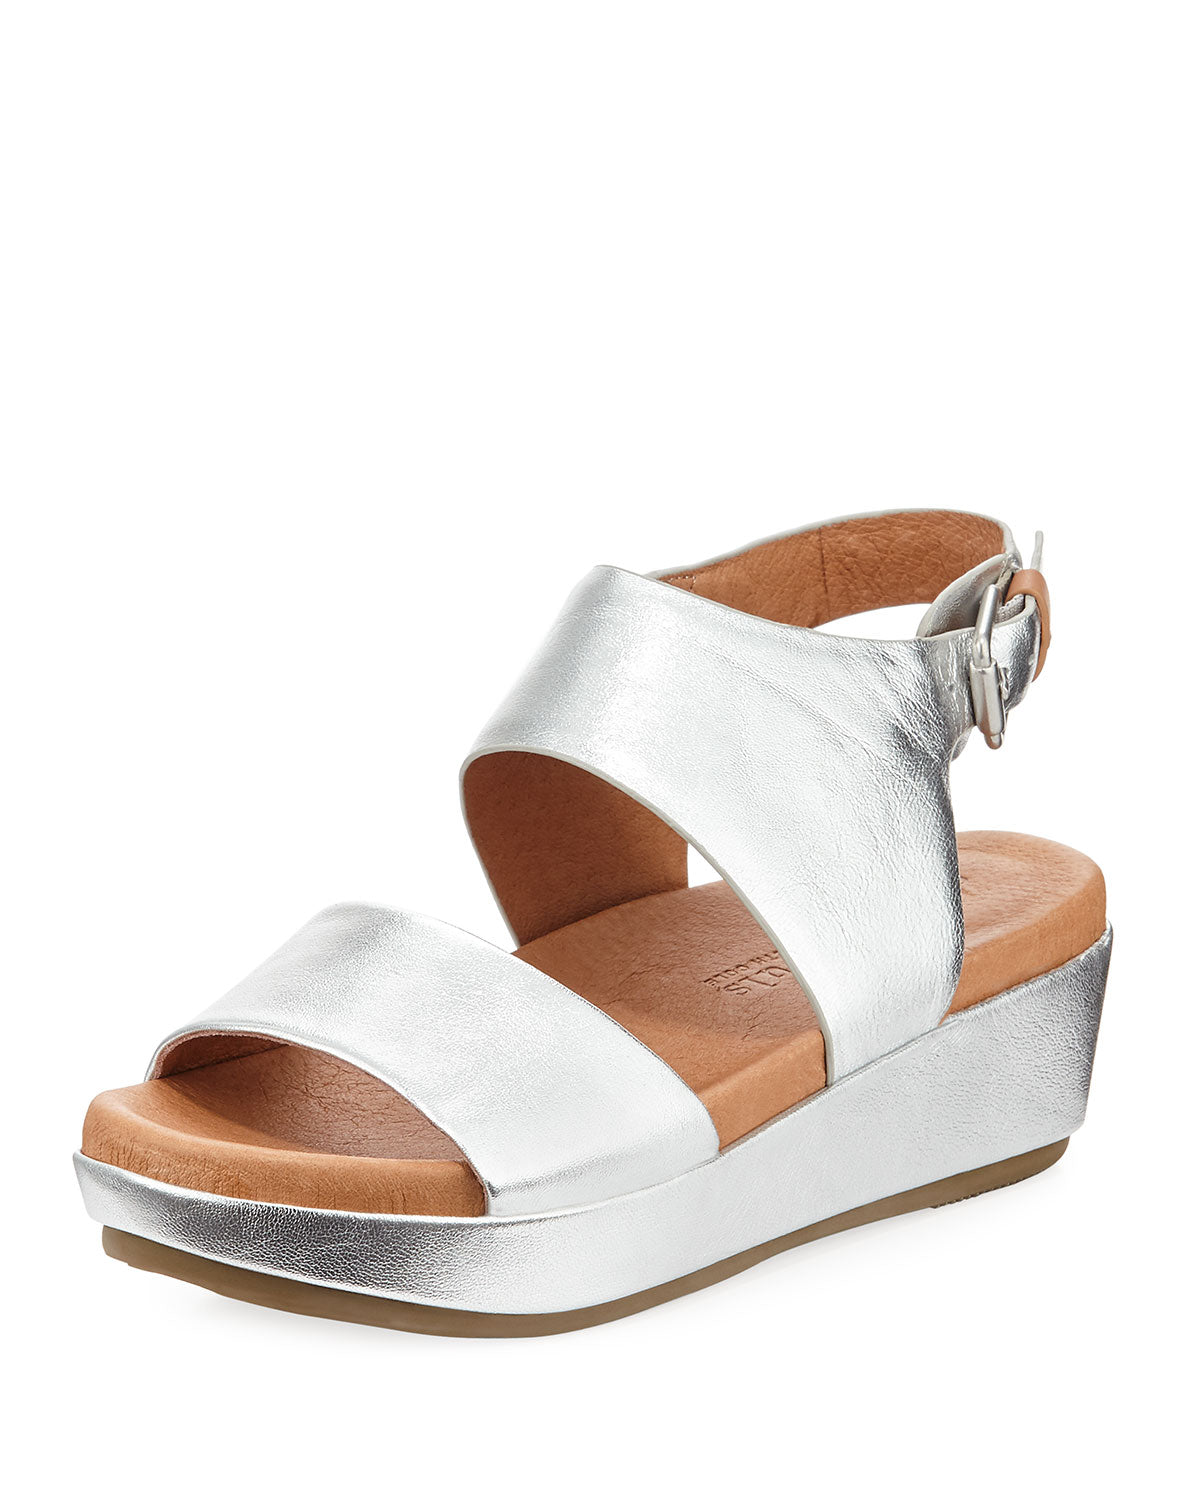 Gentle Souls by Kenneth Cole  Lori Leather Open Toe Casual Platform Sandals